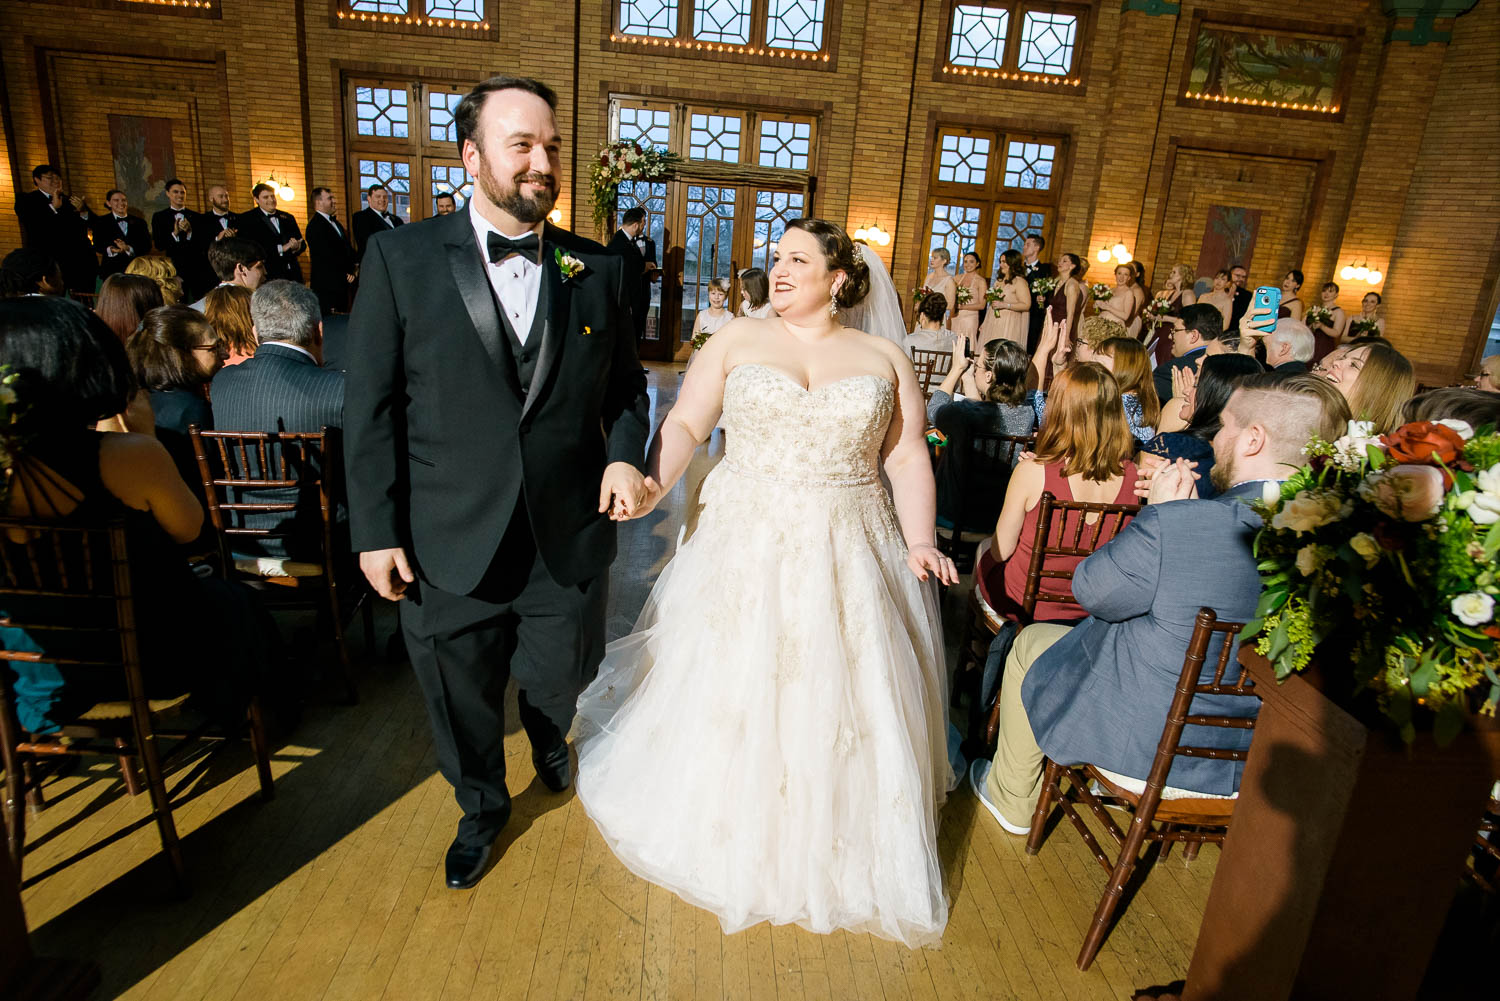 Wedding ceremony at Cafe Brauer Chicago.